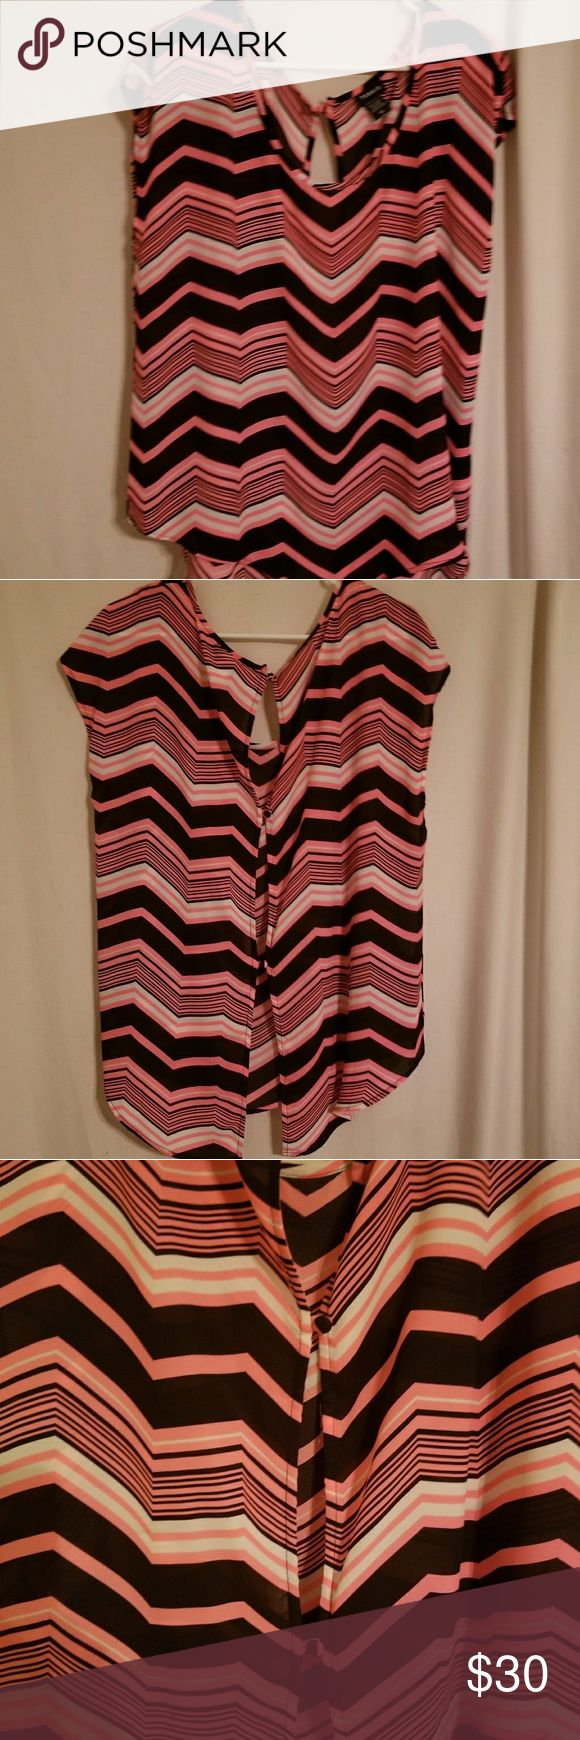 Sheer high low top Black white and pink Torrid brand high low shirt. Sheer with buttons up the back. Can also be worn as a cover up. Torrid size 00 or large in standard sizes torrid Tops Blouses